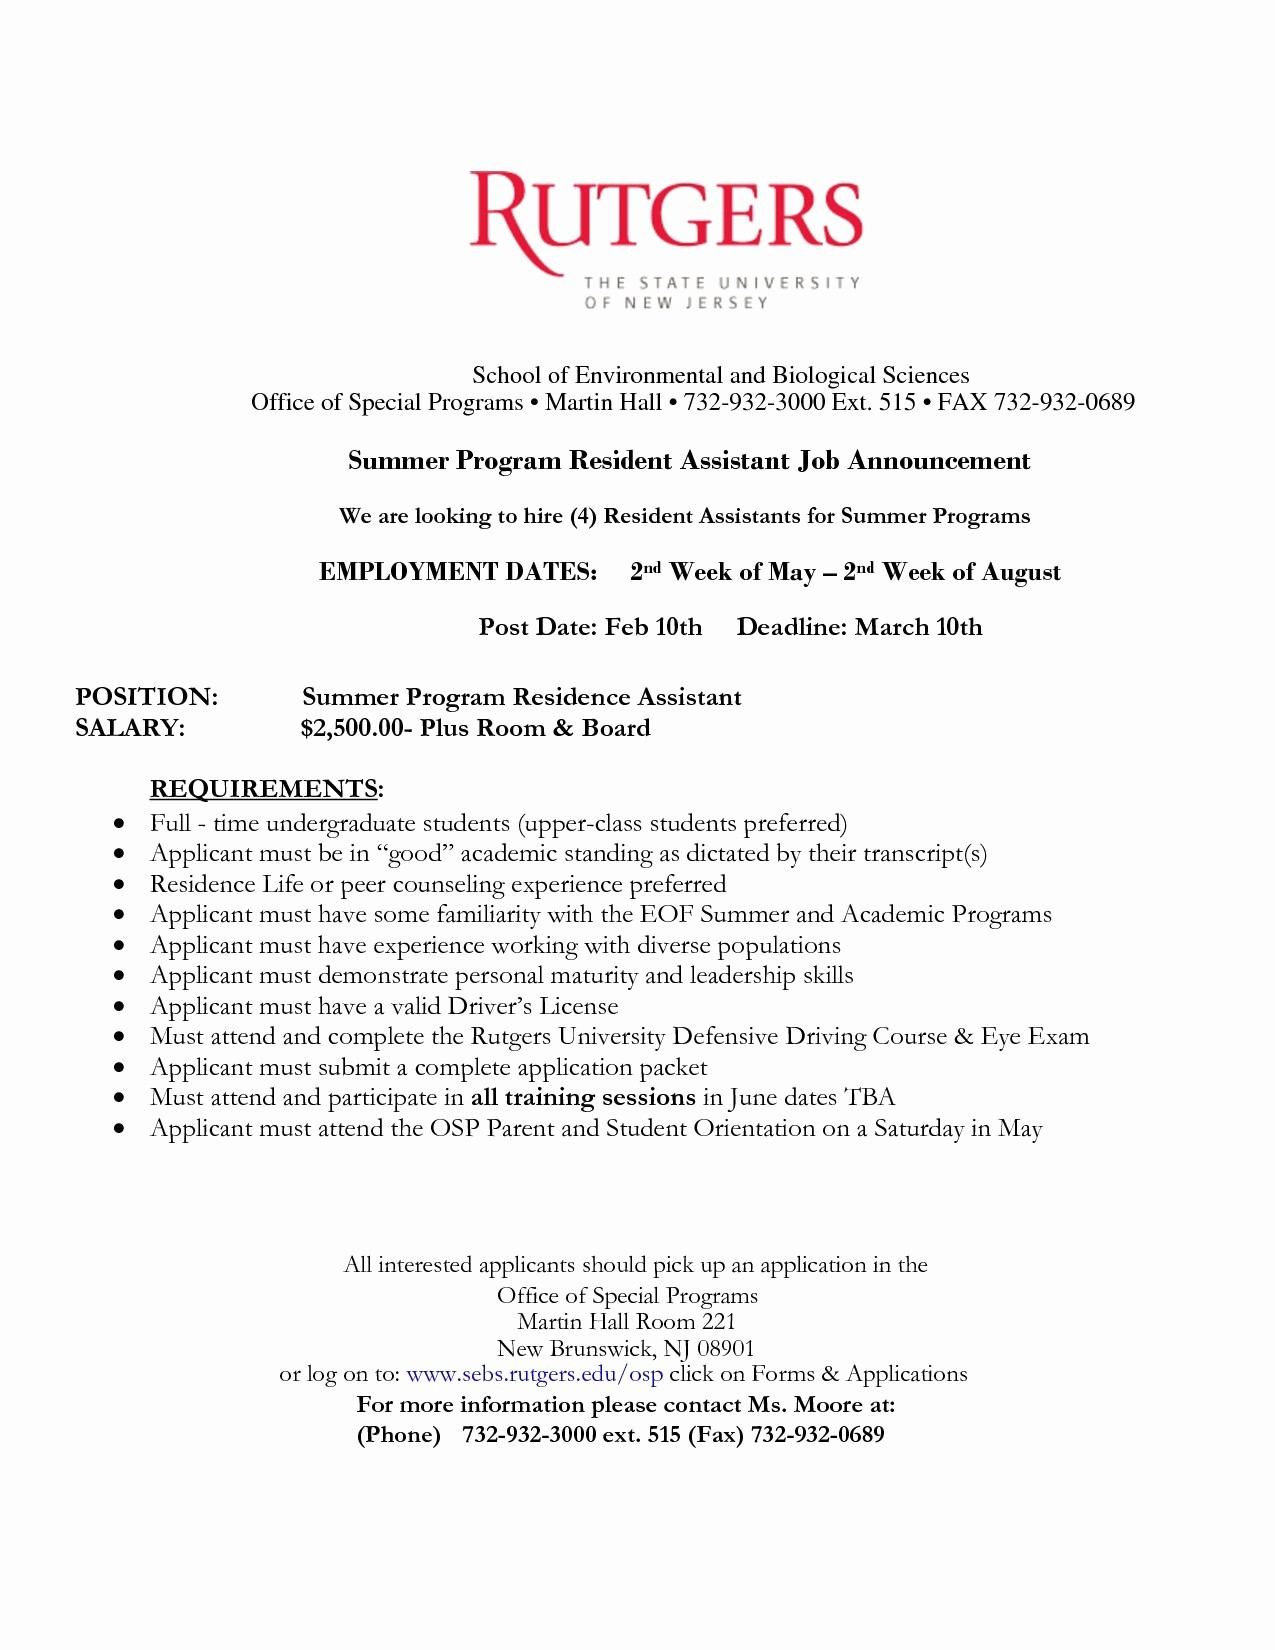 Resumes for Construction Workers - Construction Resume Template Inspirational Resume Examples 0d Skills